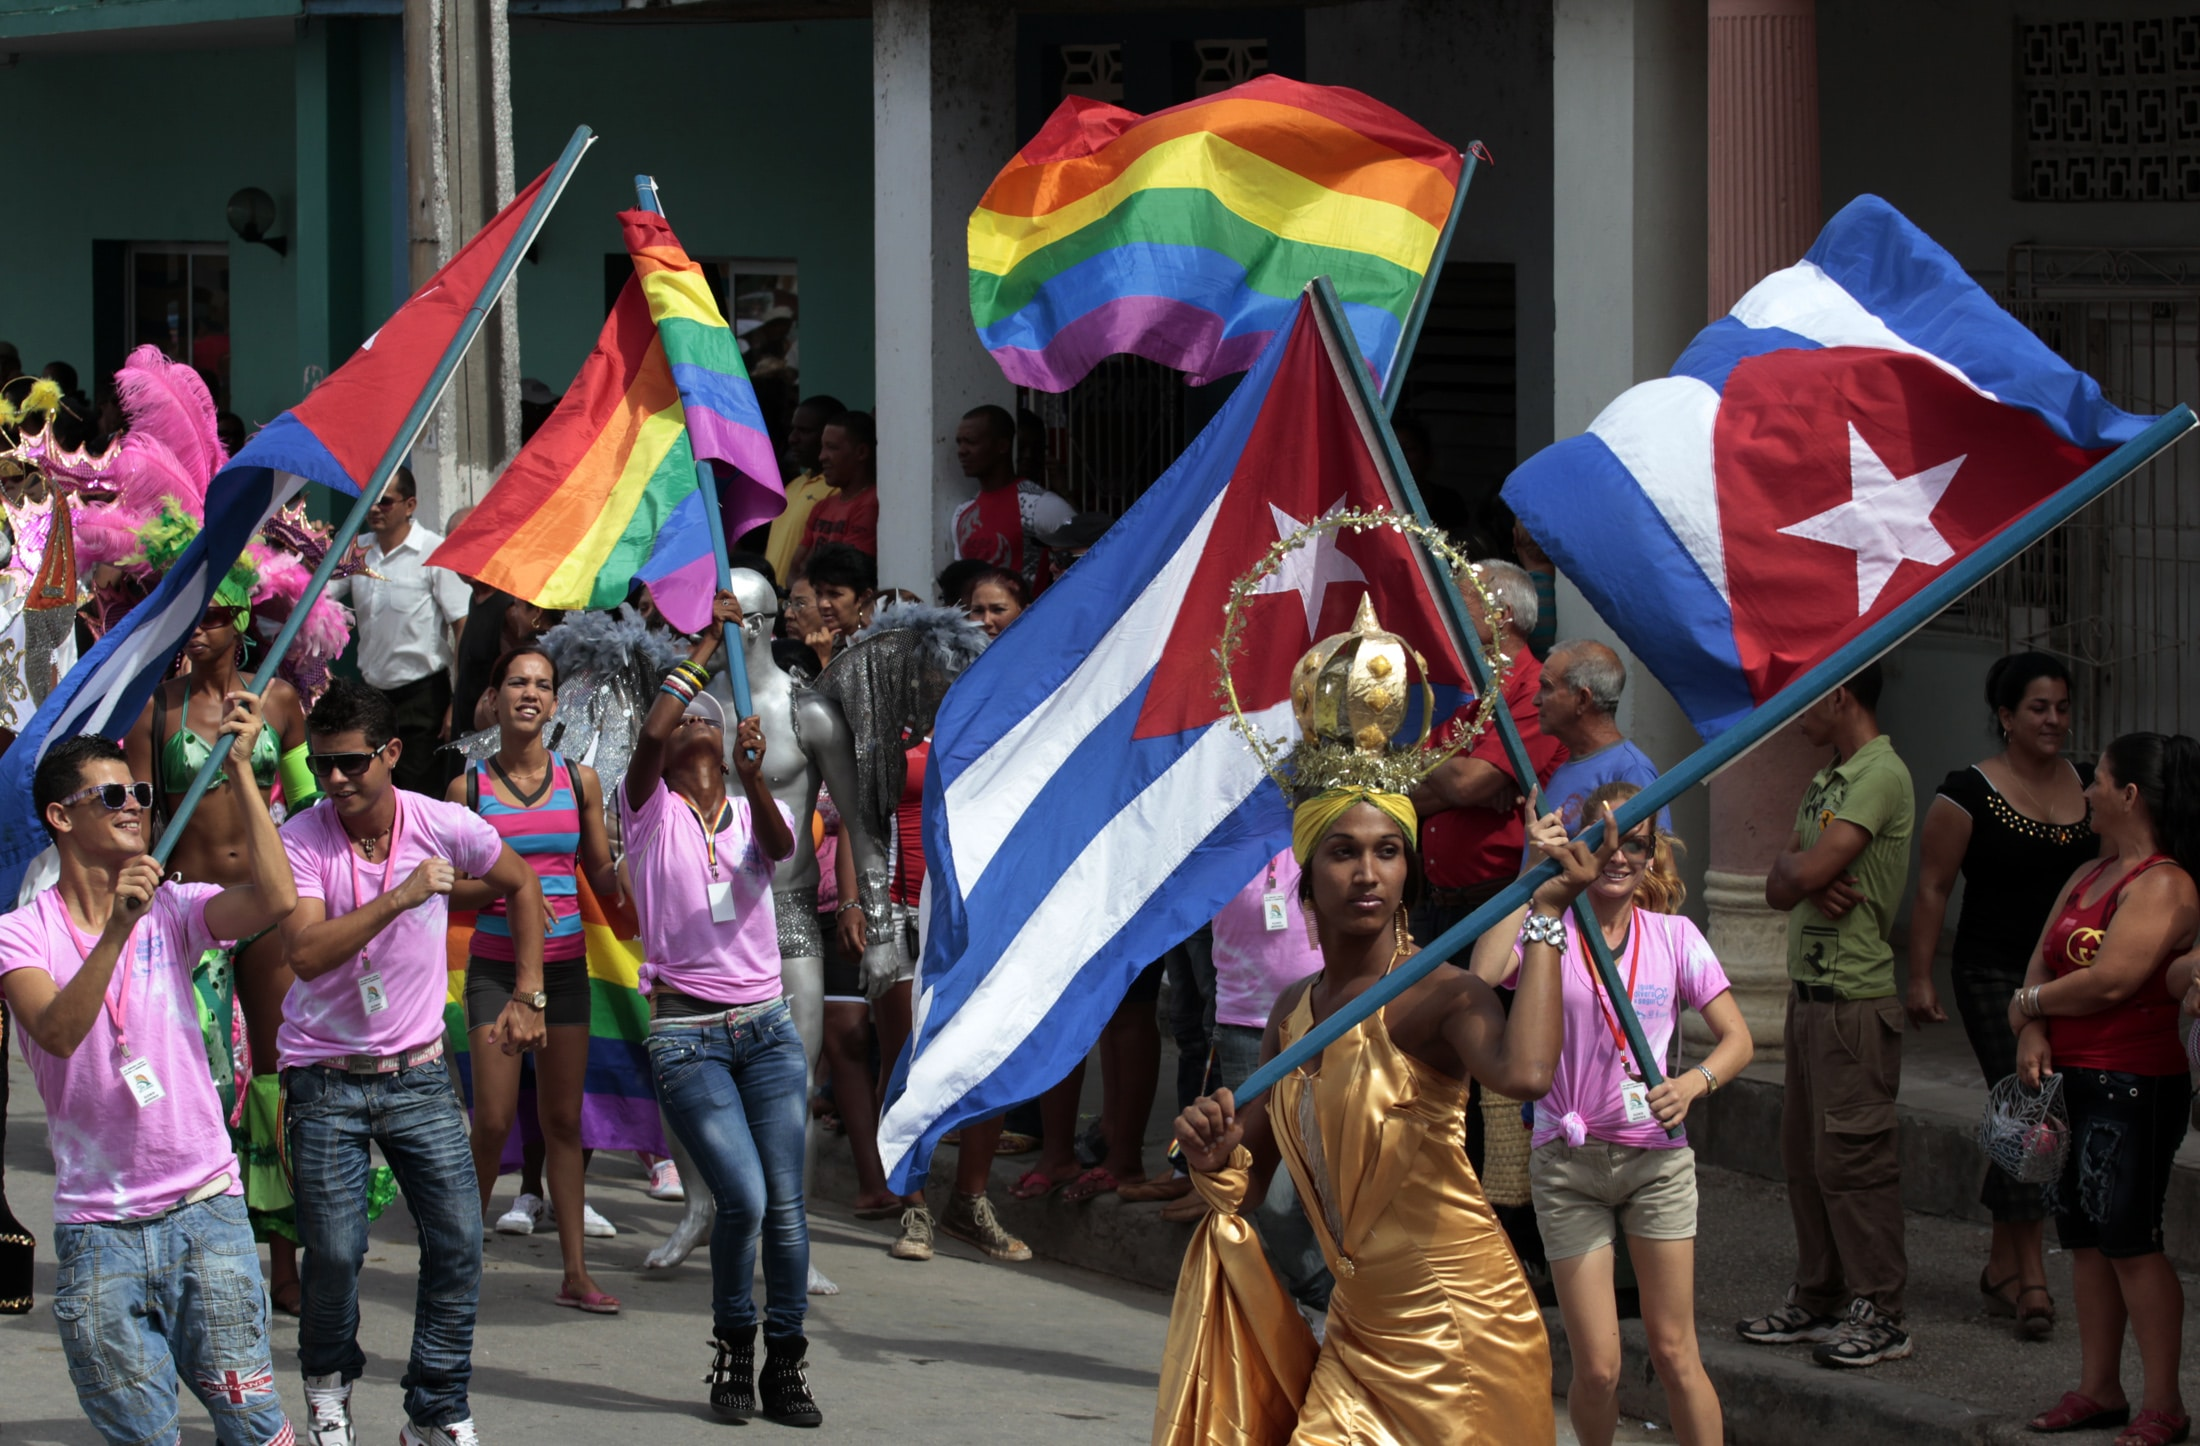 Two Teen Girls Face Jail Time In Morocco For Homosexuality